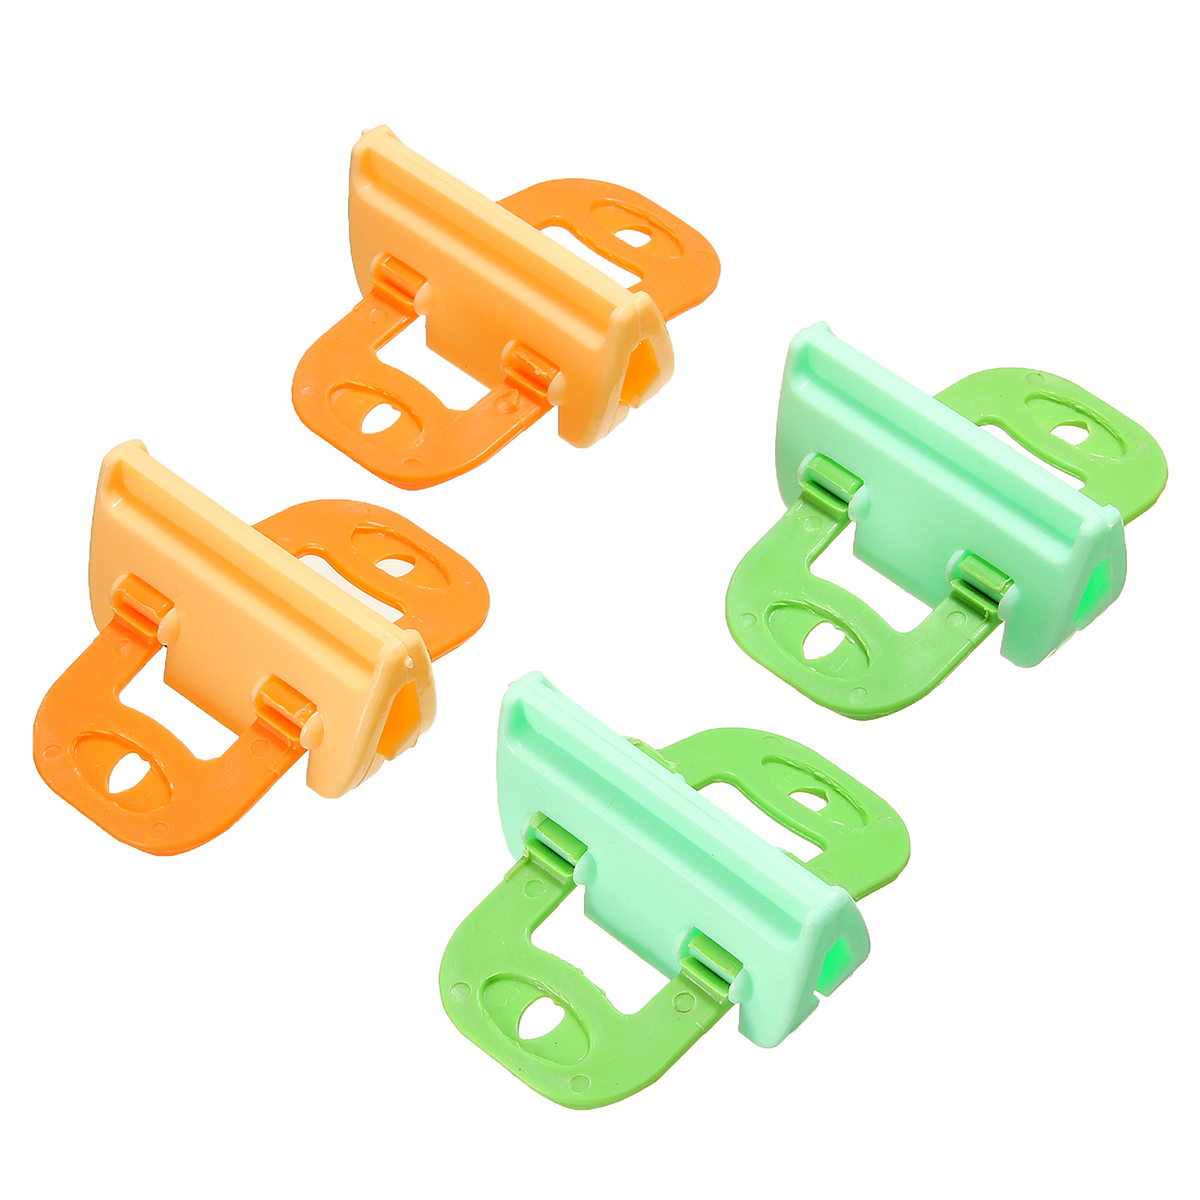 Clip Seal Bags 4pcs Kitchen Storage Food Snack Seal Sealing Bag Clips